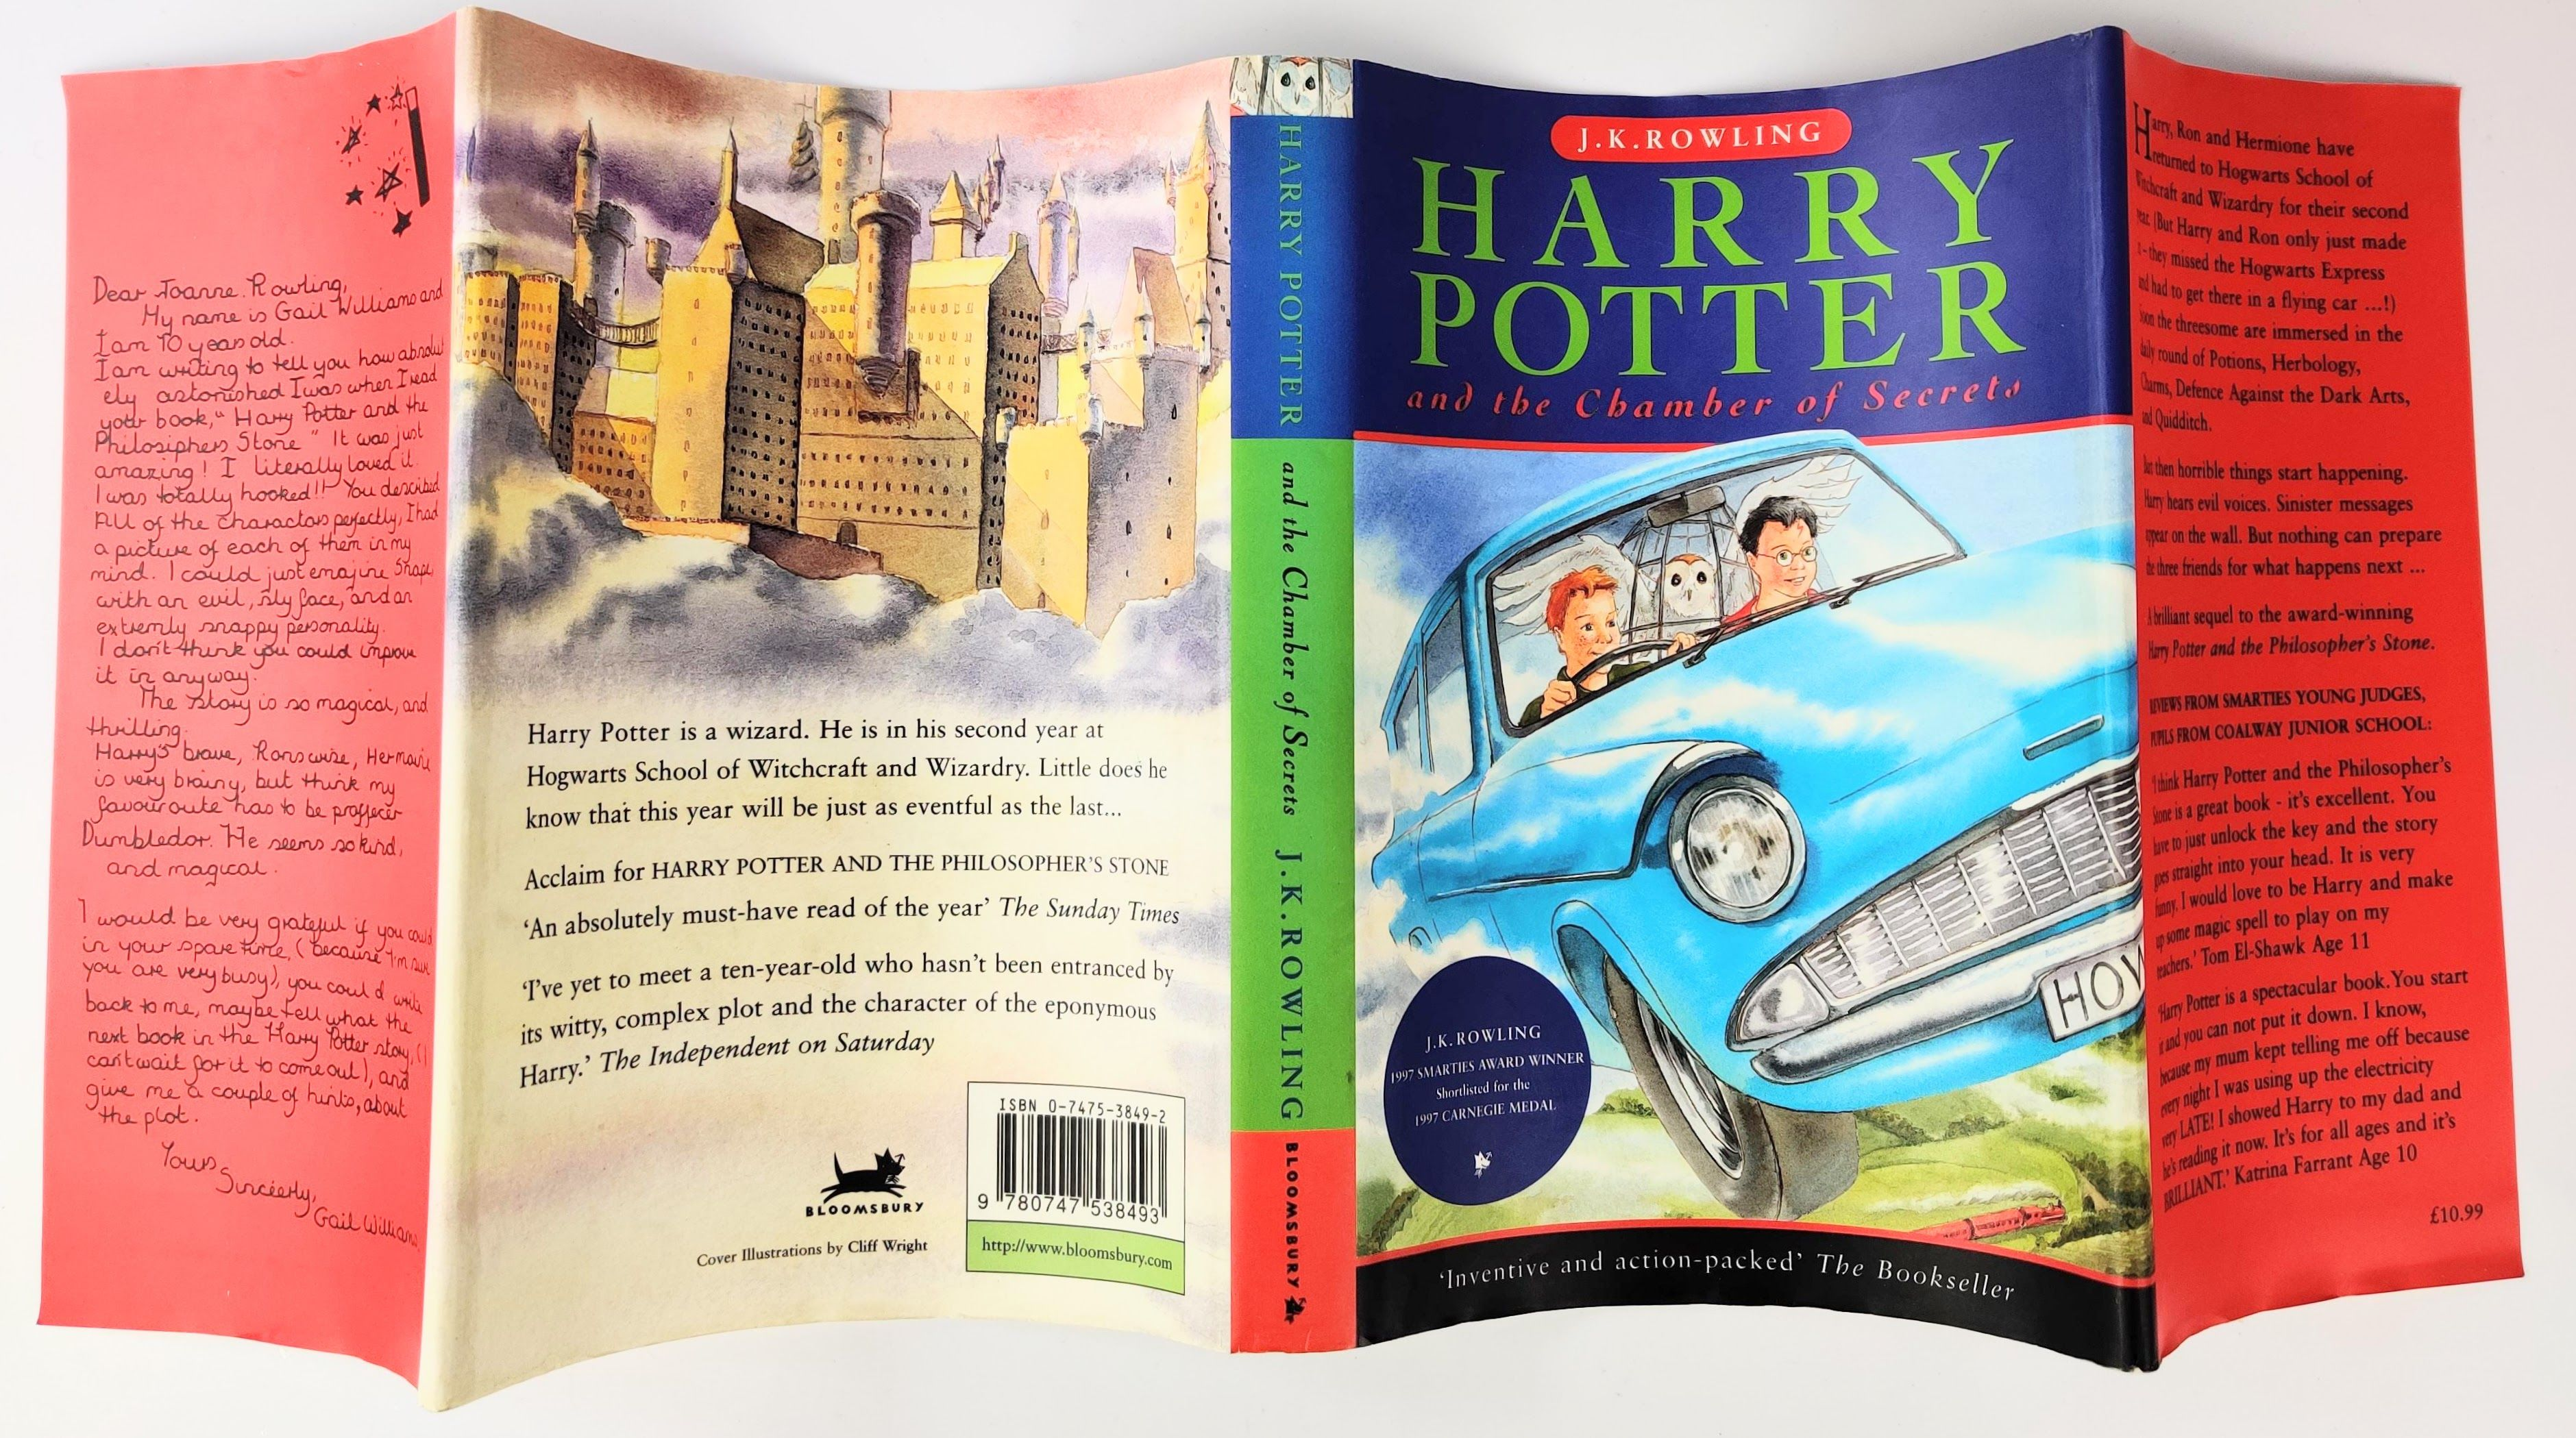 Harry Potter and the Chamber of Secrets (photo 4)